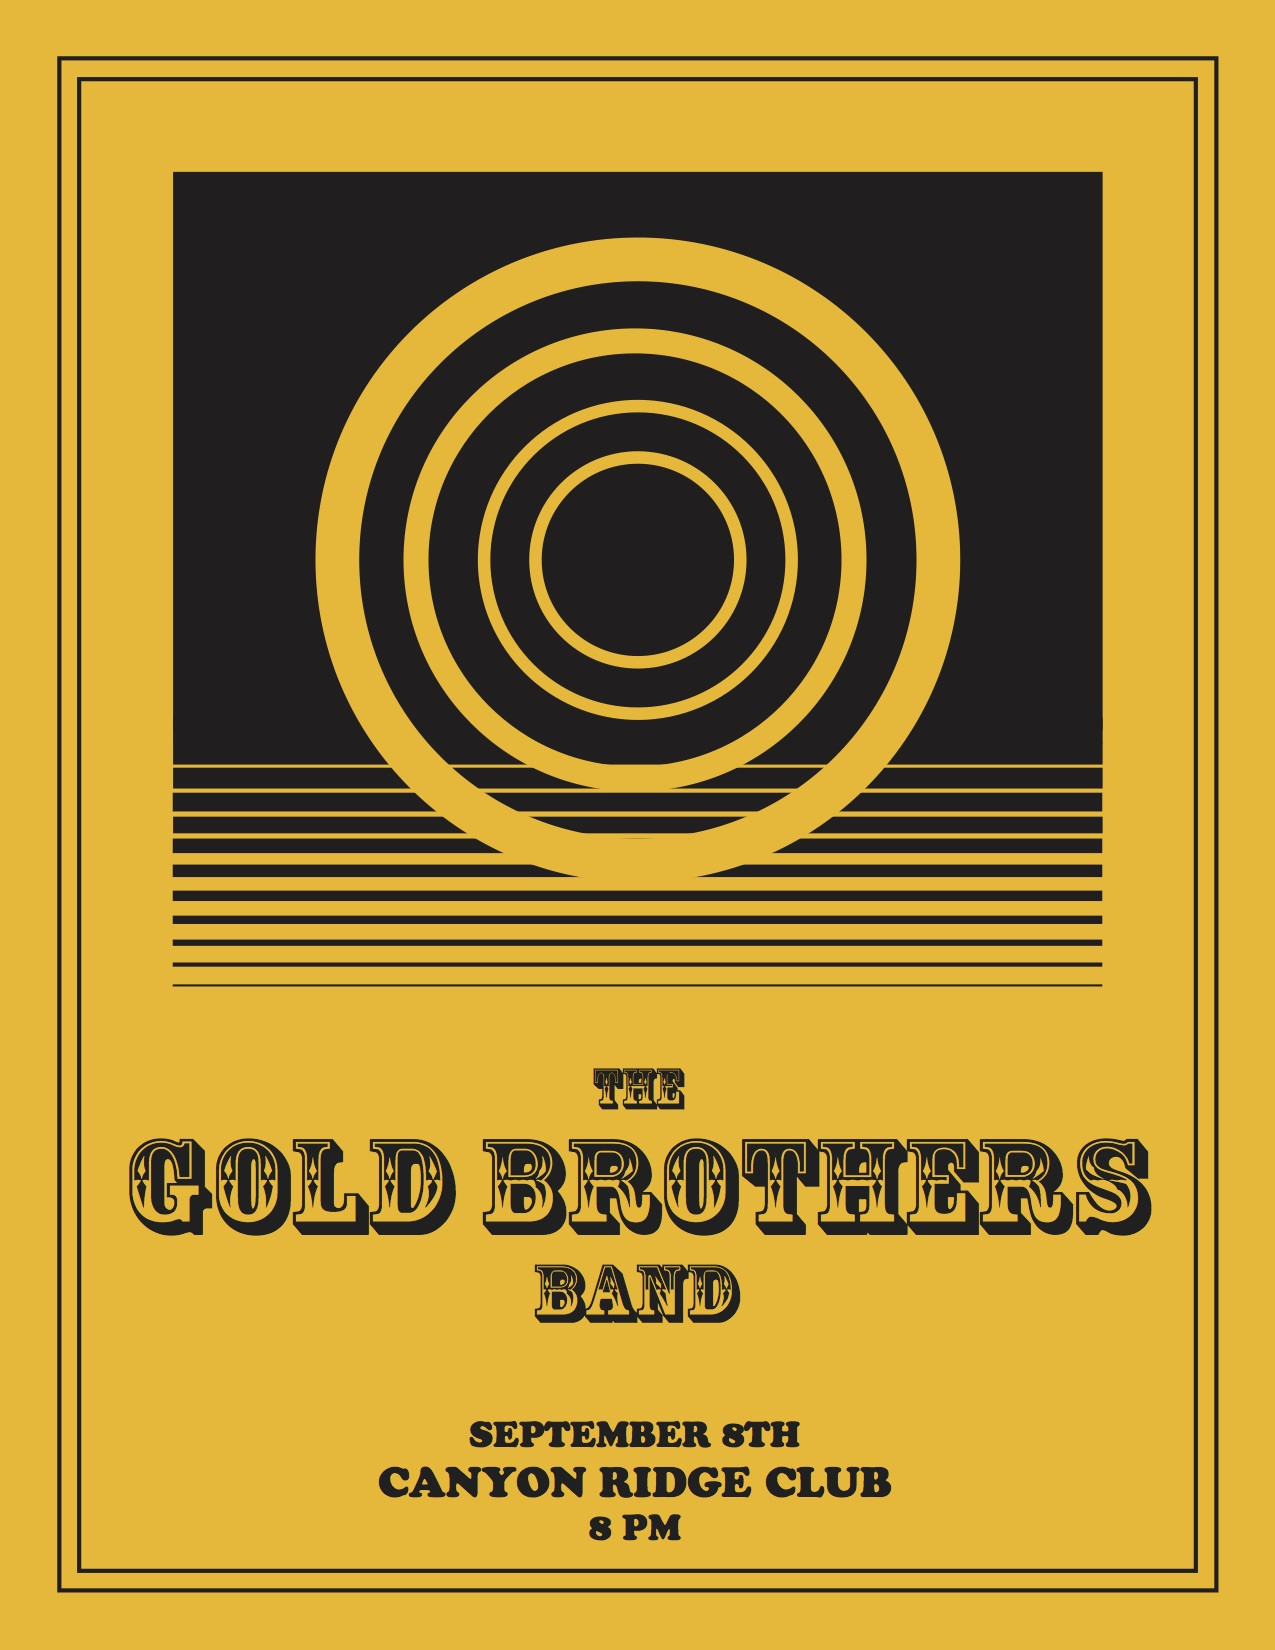 The+Gold+Brothers+Show+Poster.jpg